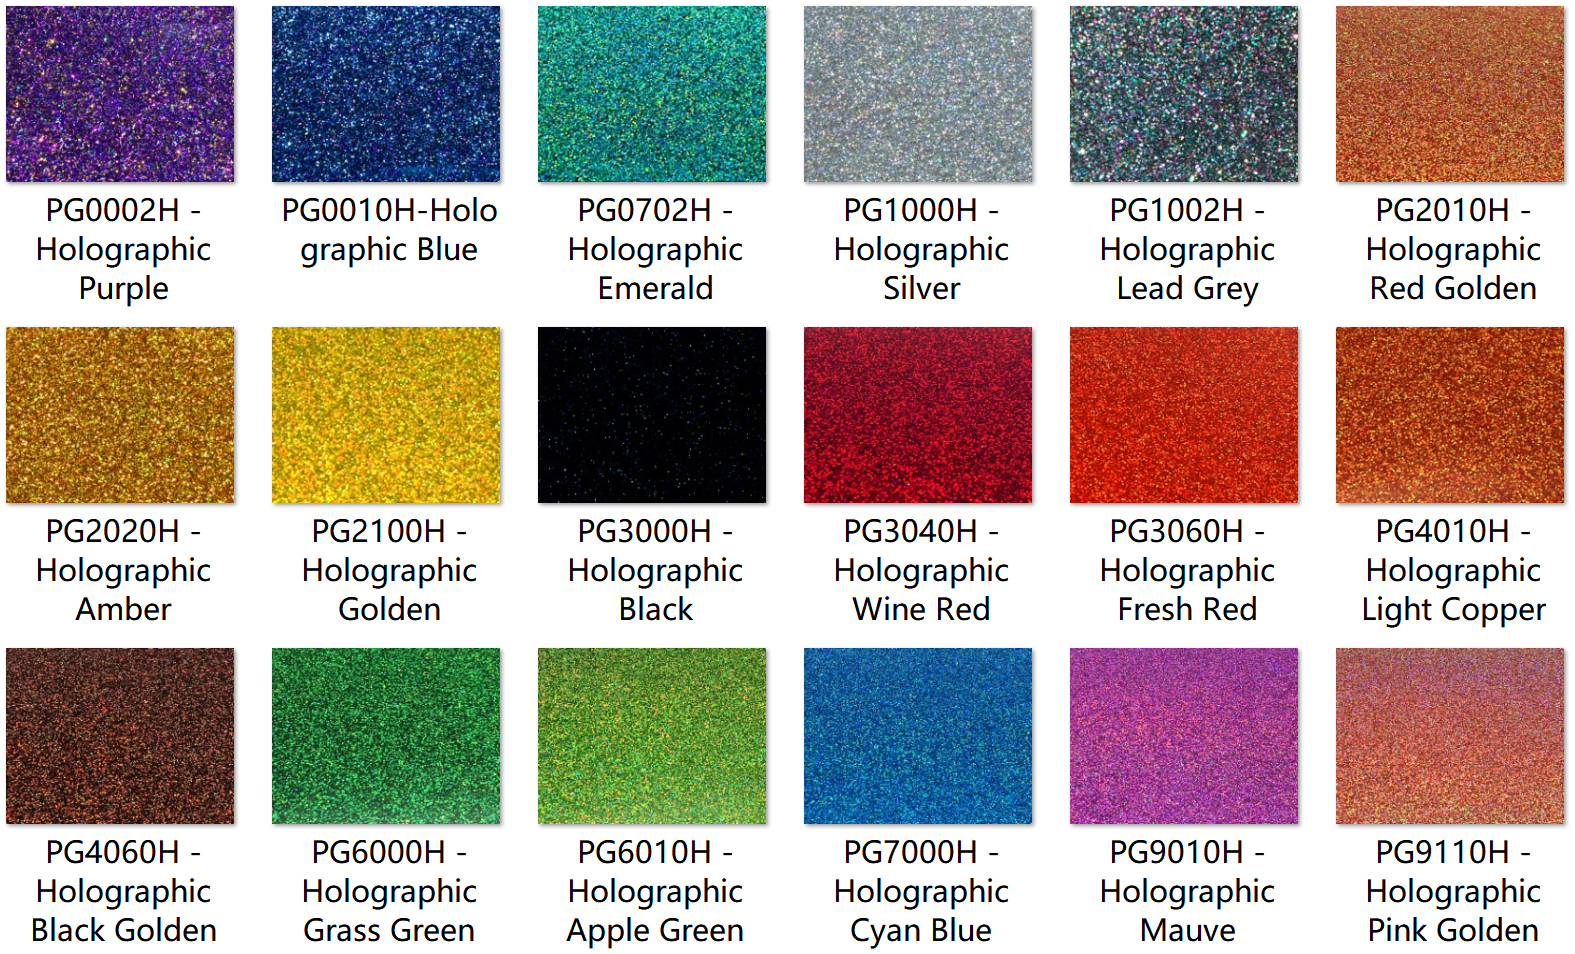 400mm x 300mm x 3 0mm L x W x T Multi Colors Acrylic PMMA Two